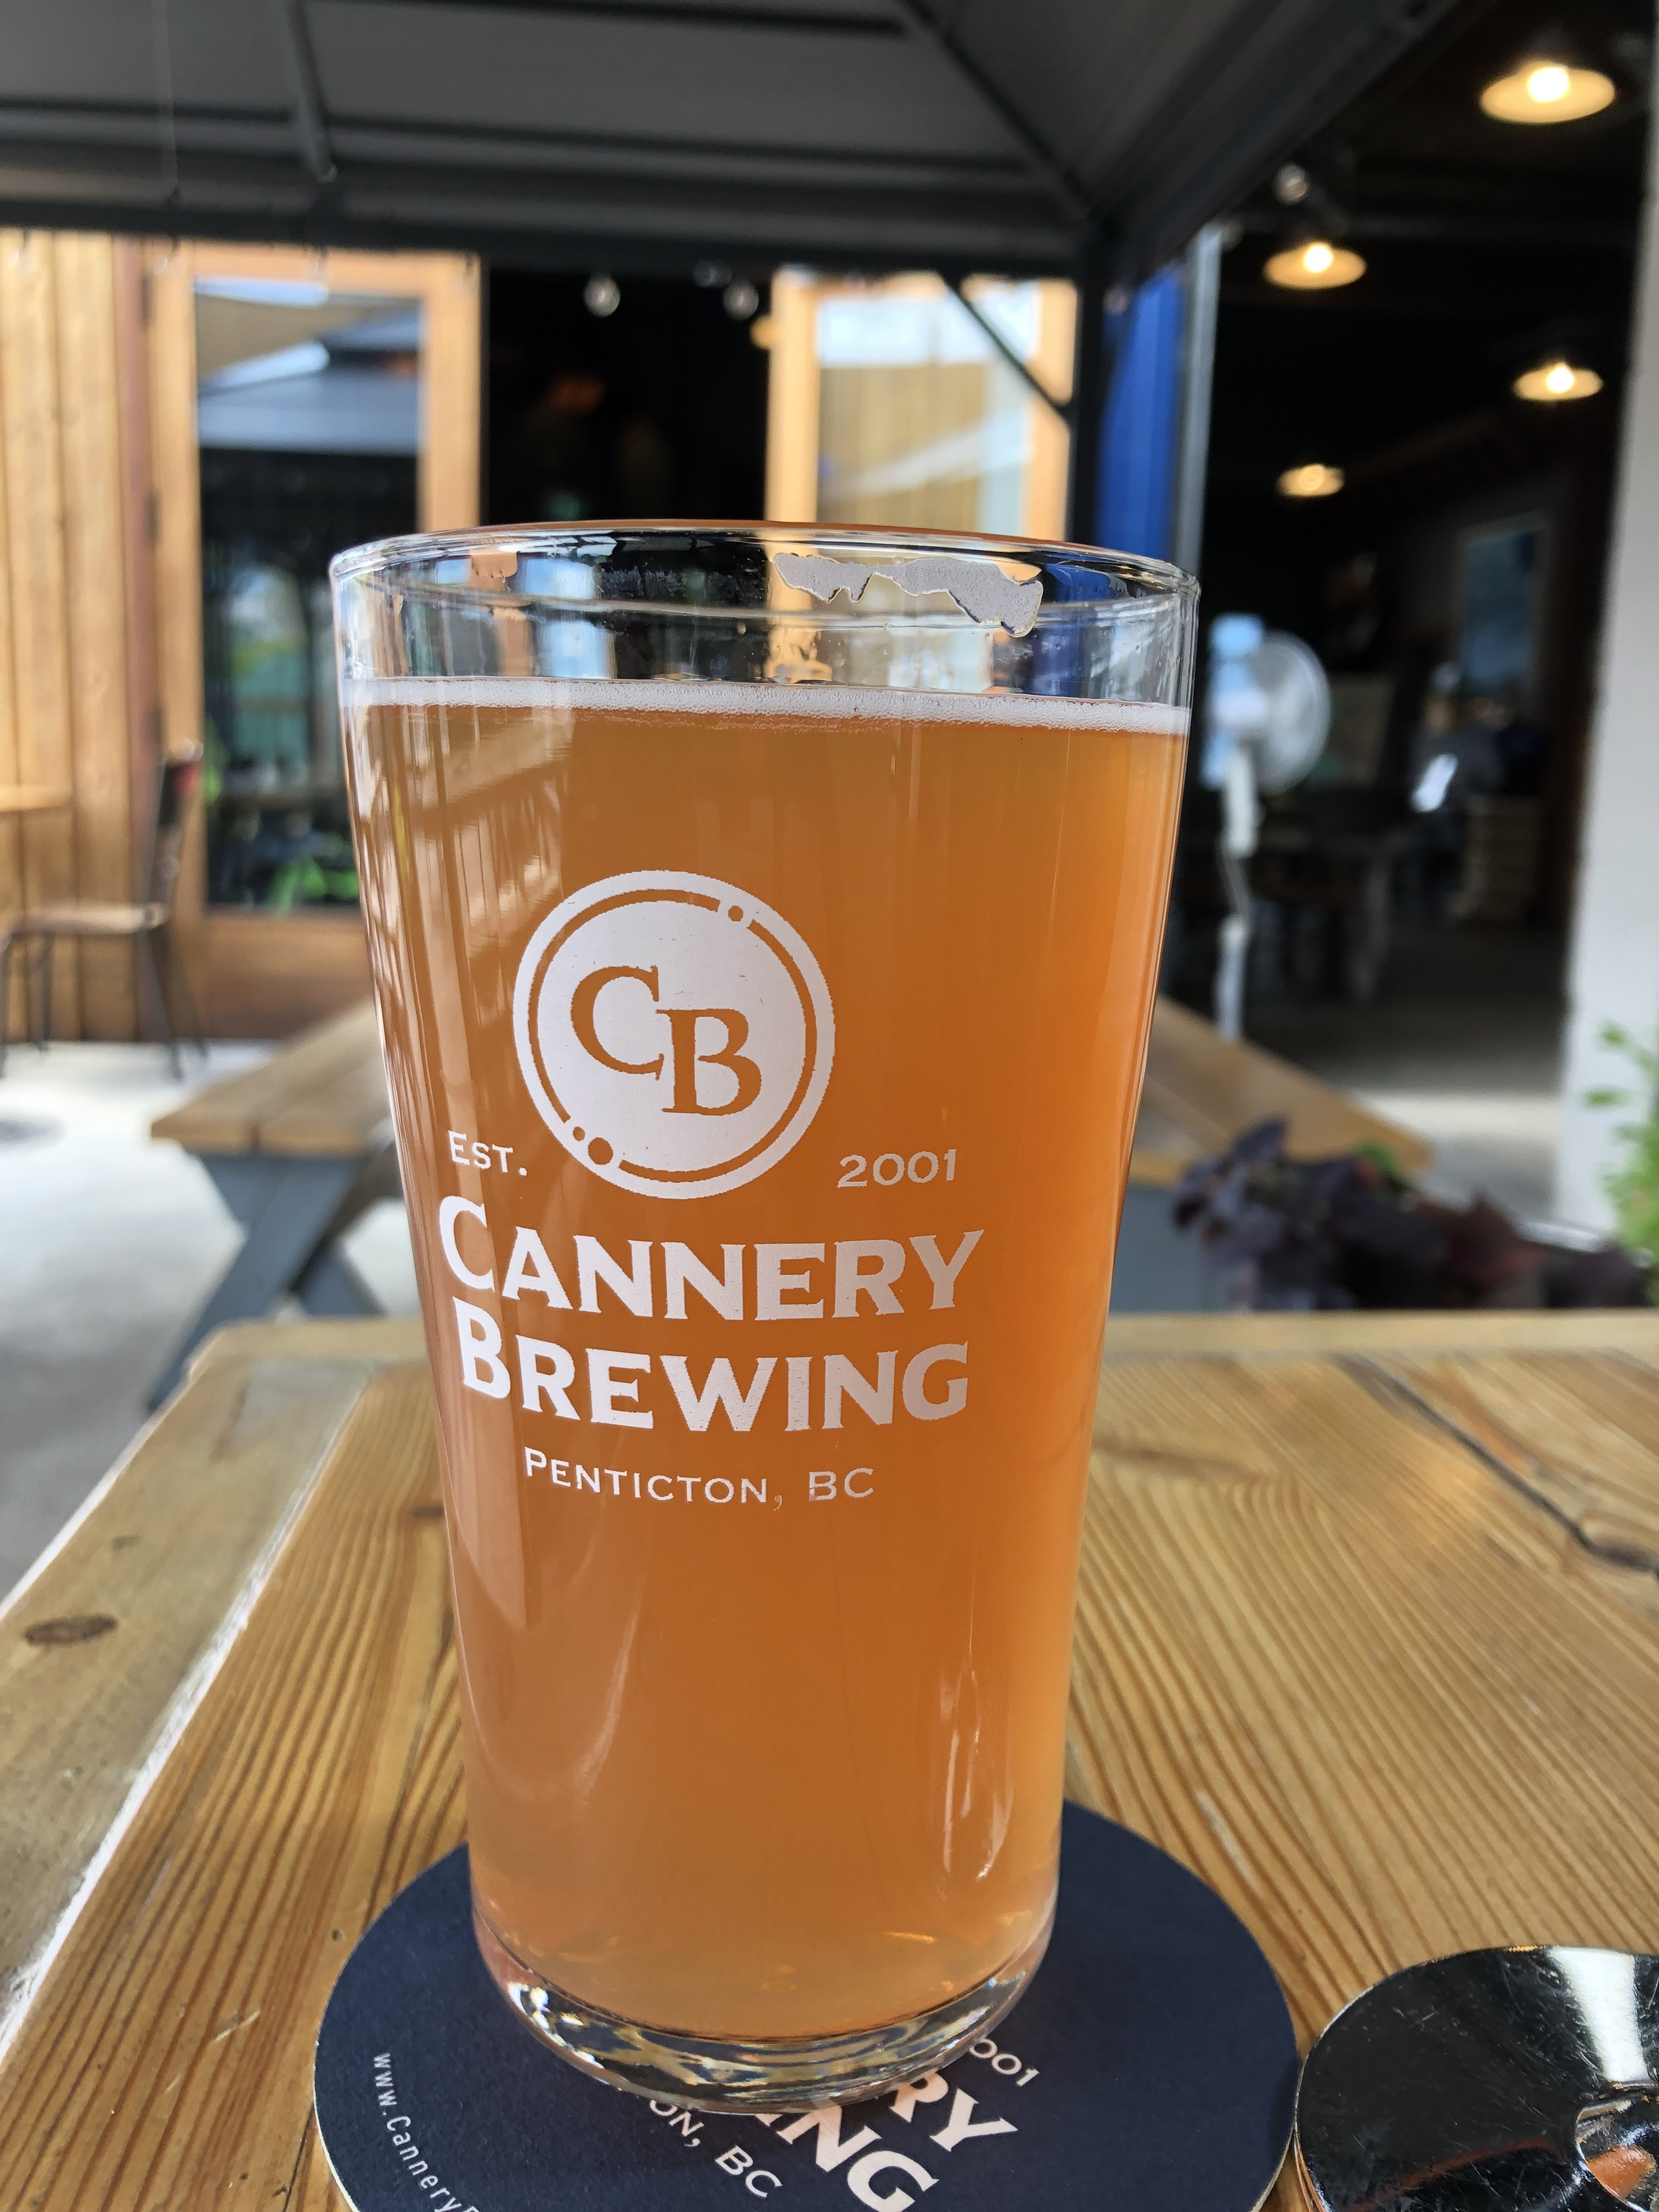 Picture of a pint glass with Cannery Brewing logo.